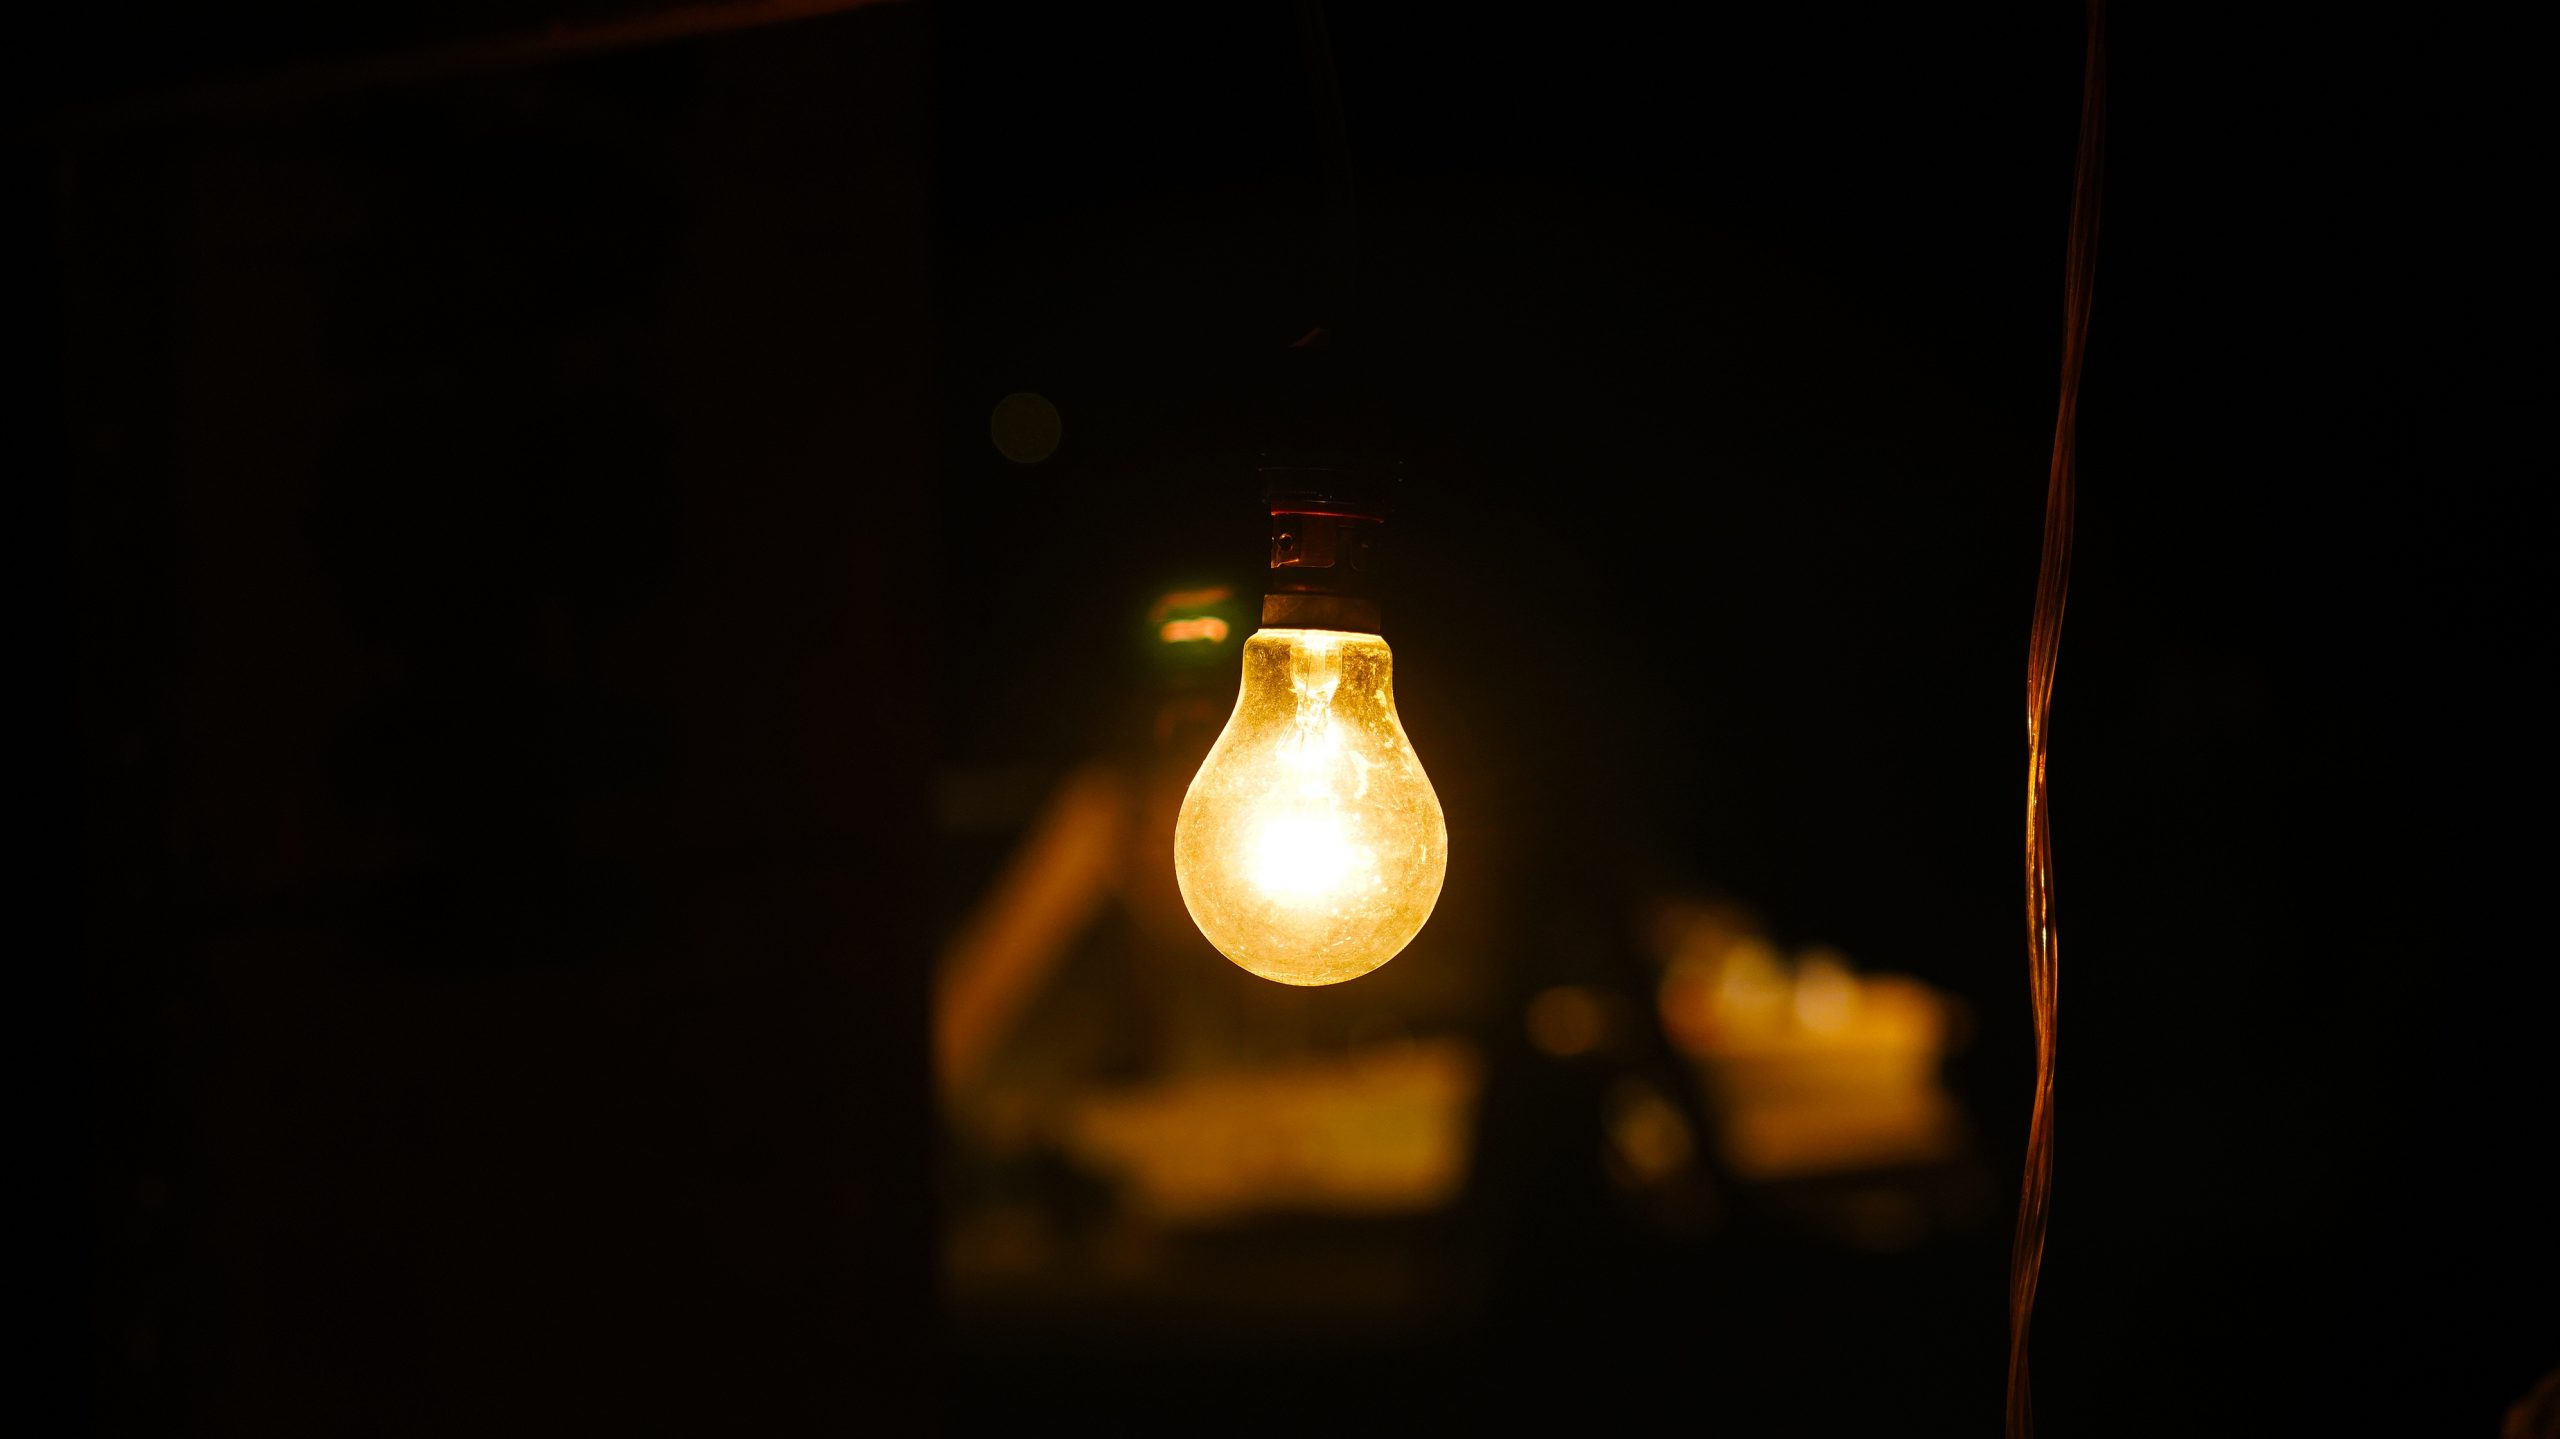 Bulb glowing in the dark